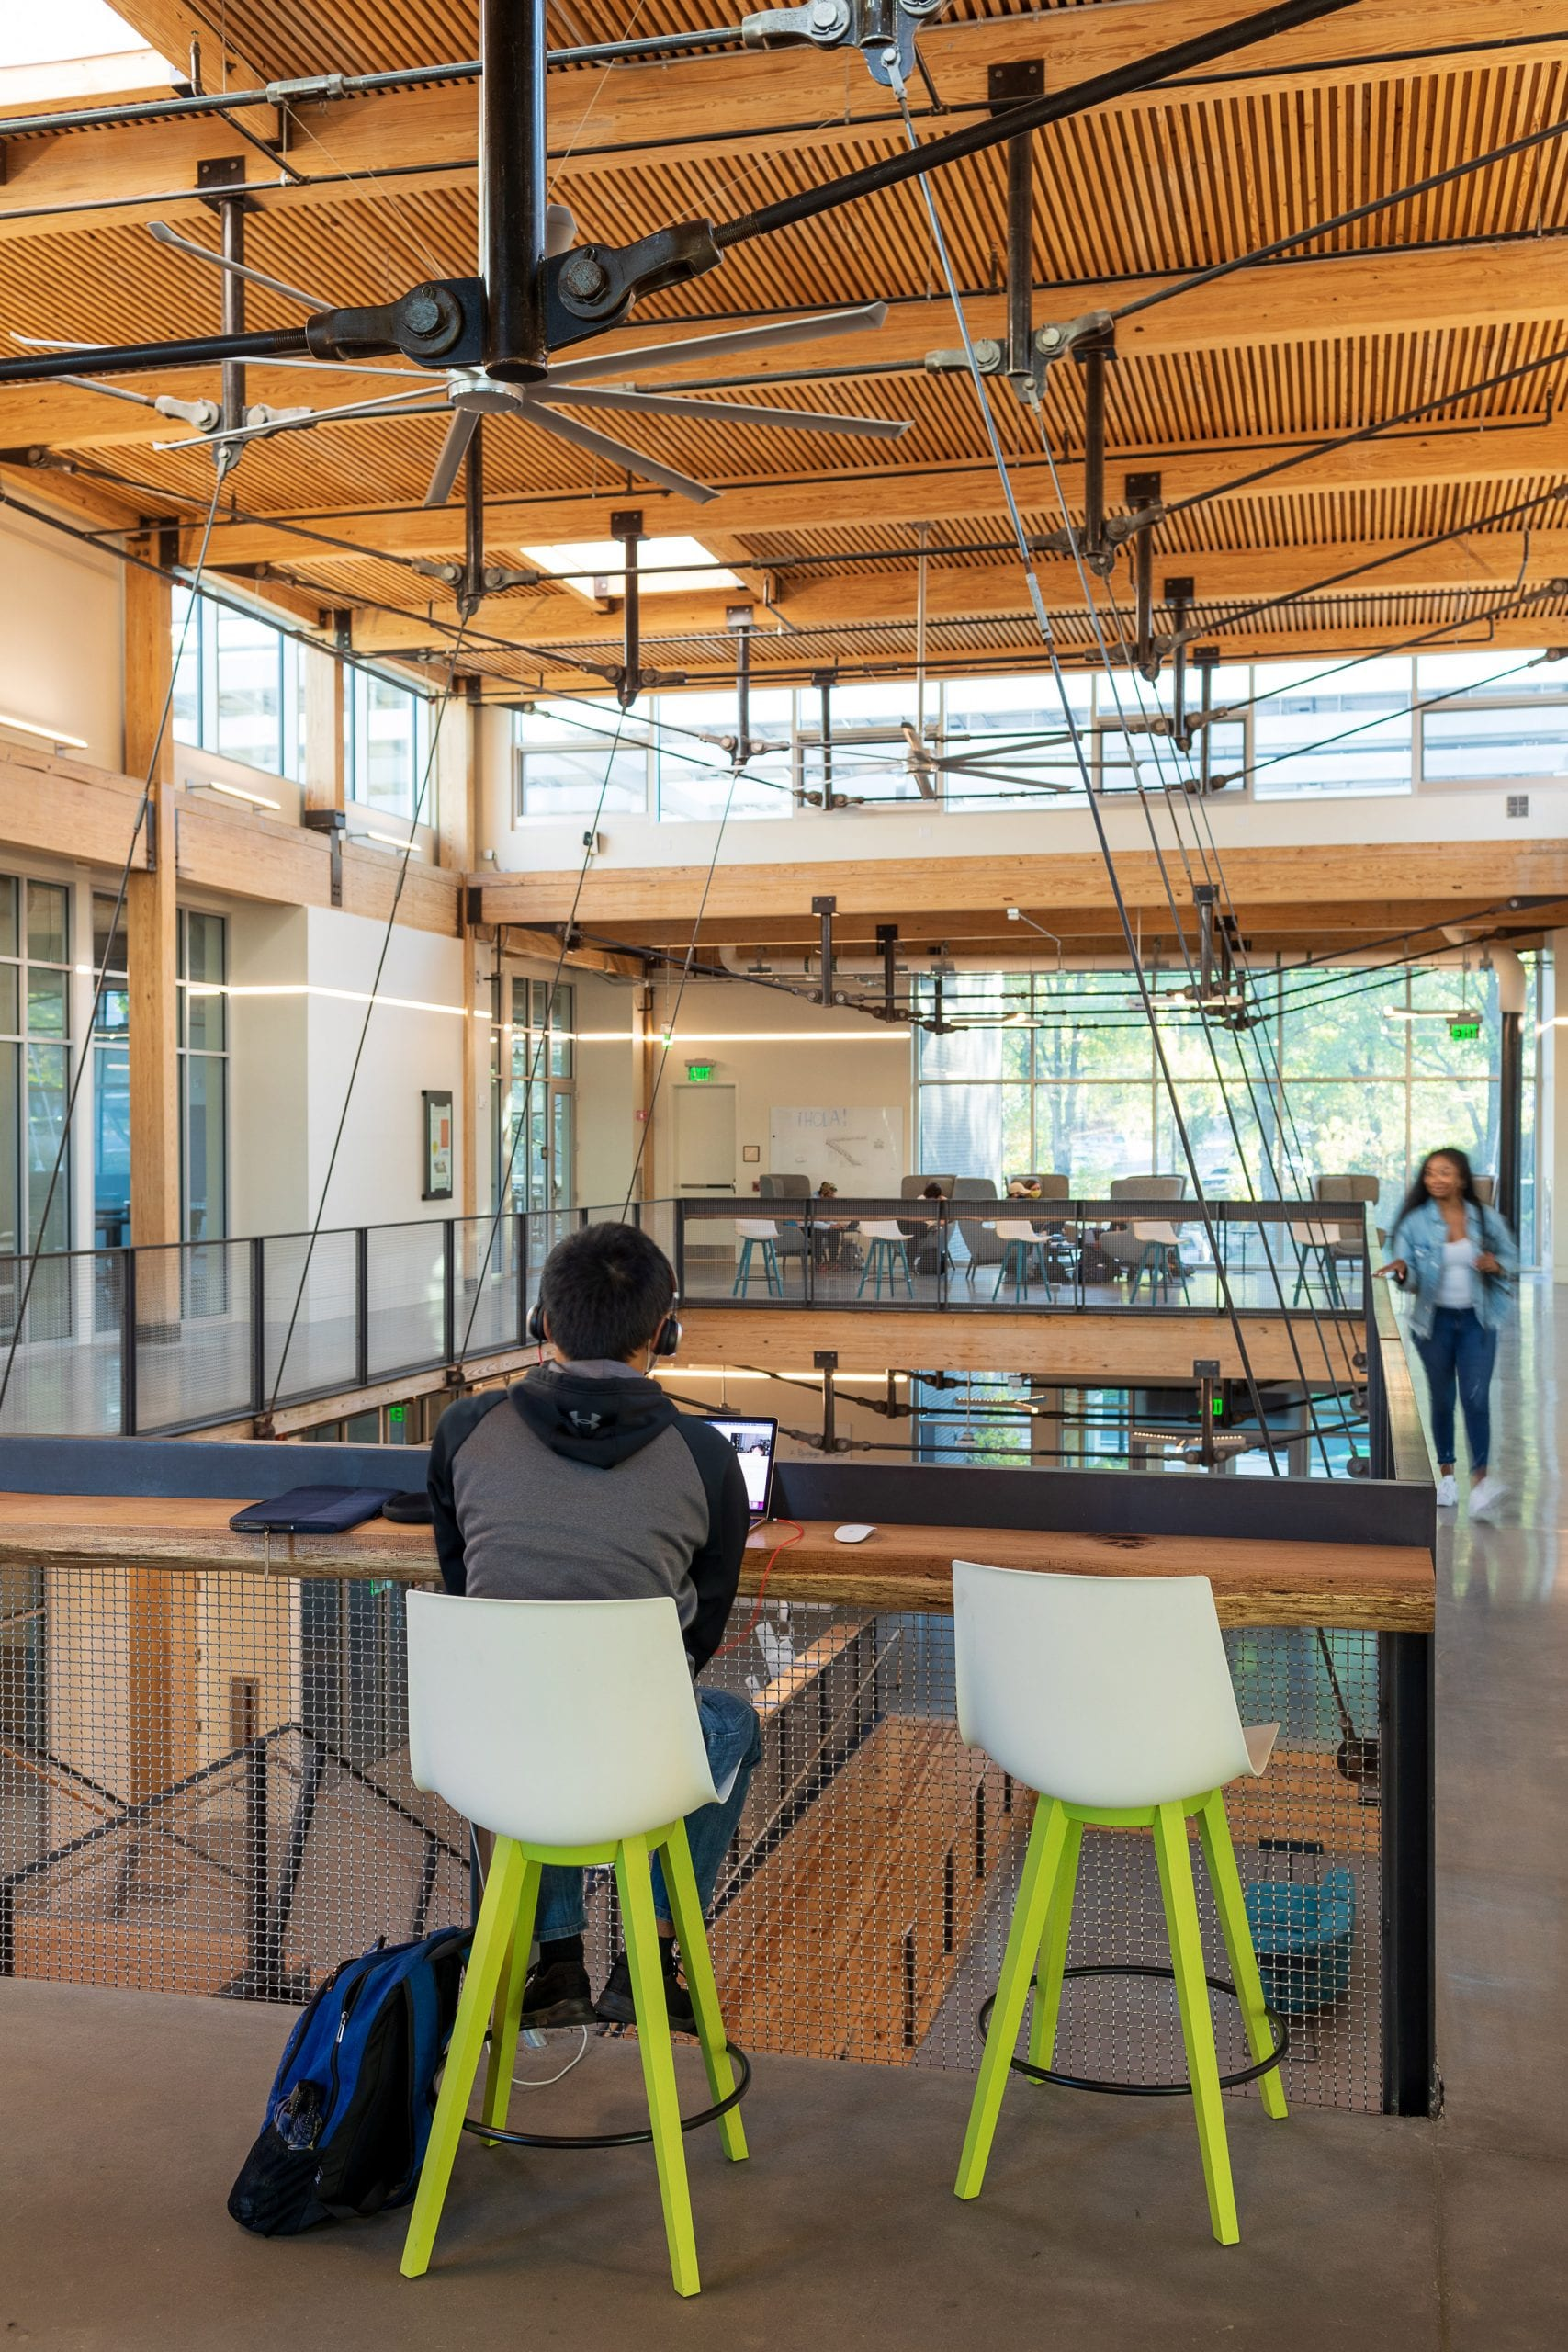 The university building is highly sustainable